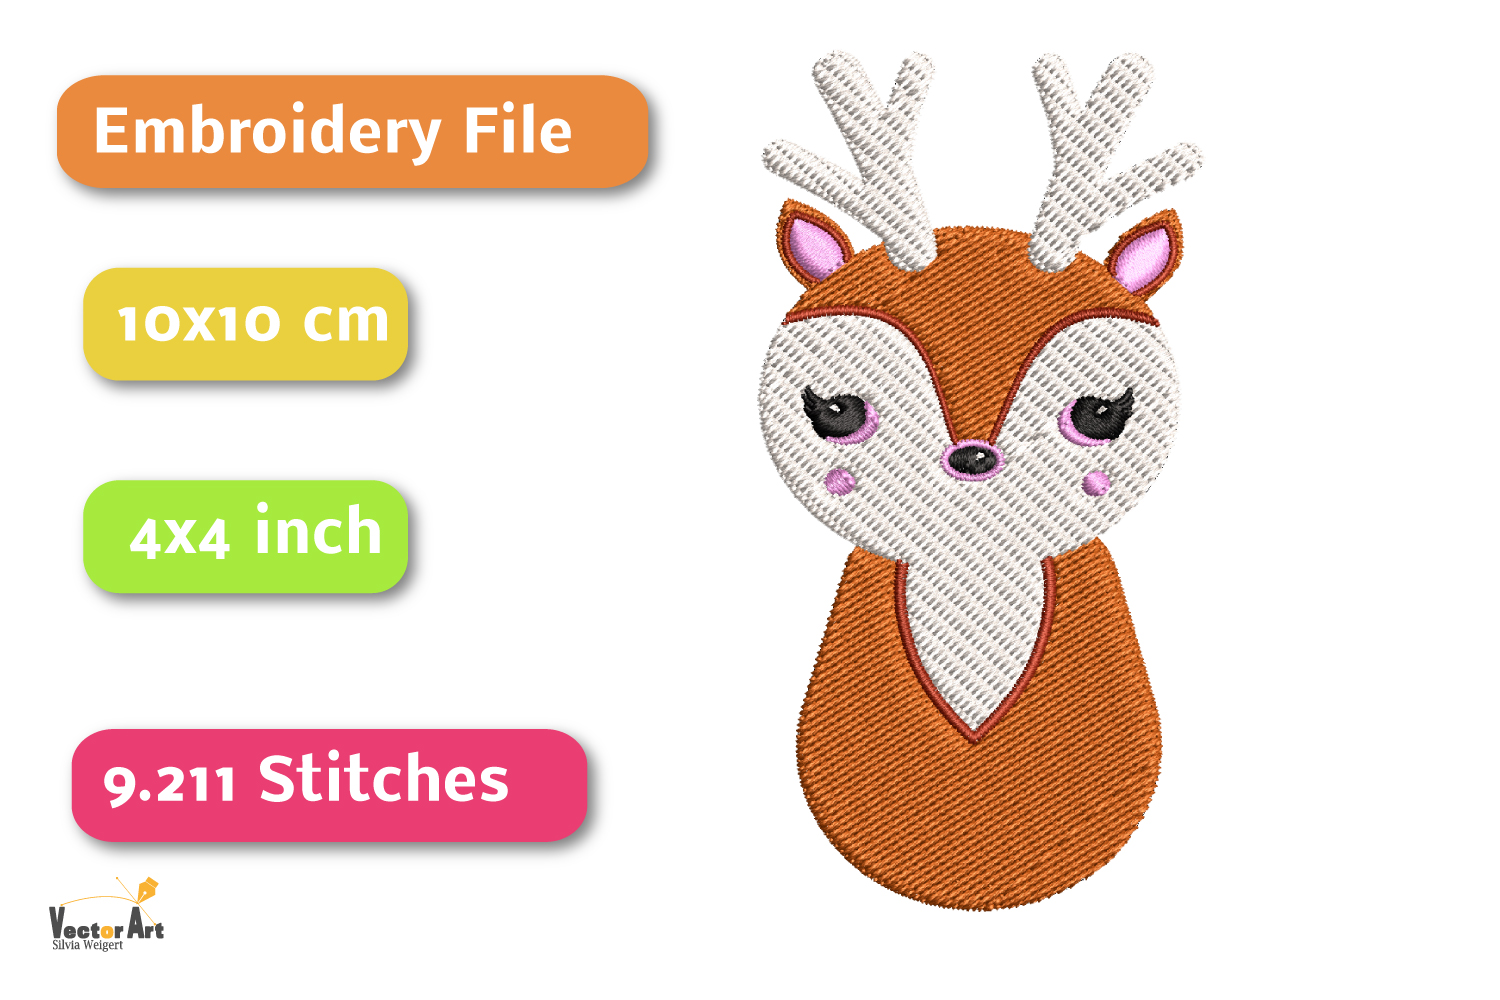 Deer - Embroidery File - 4x4 inch example image 2